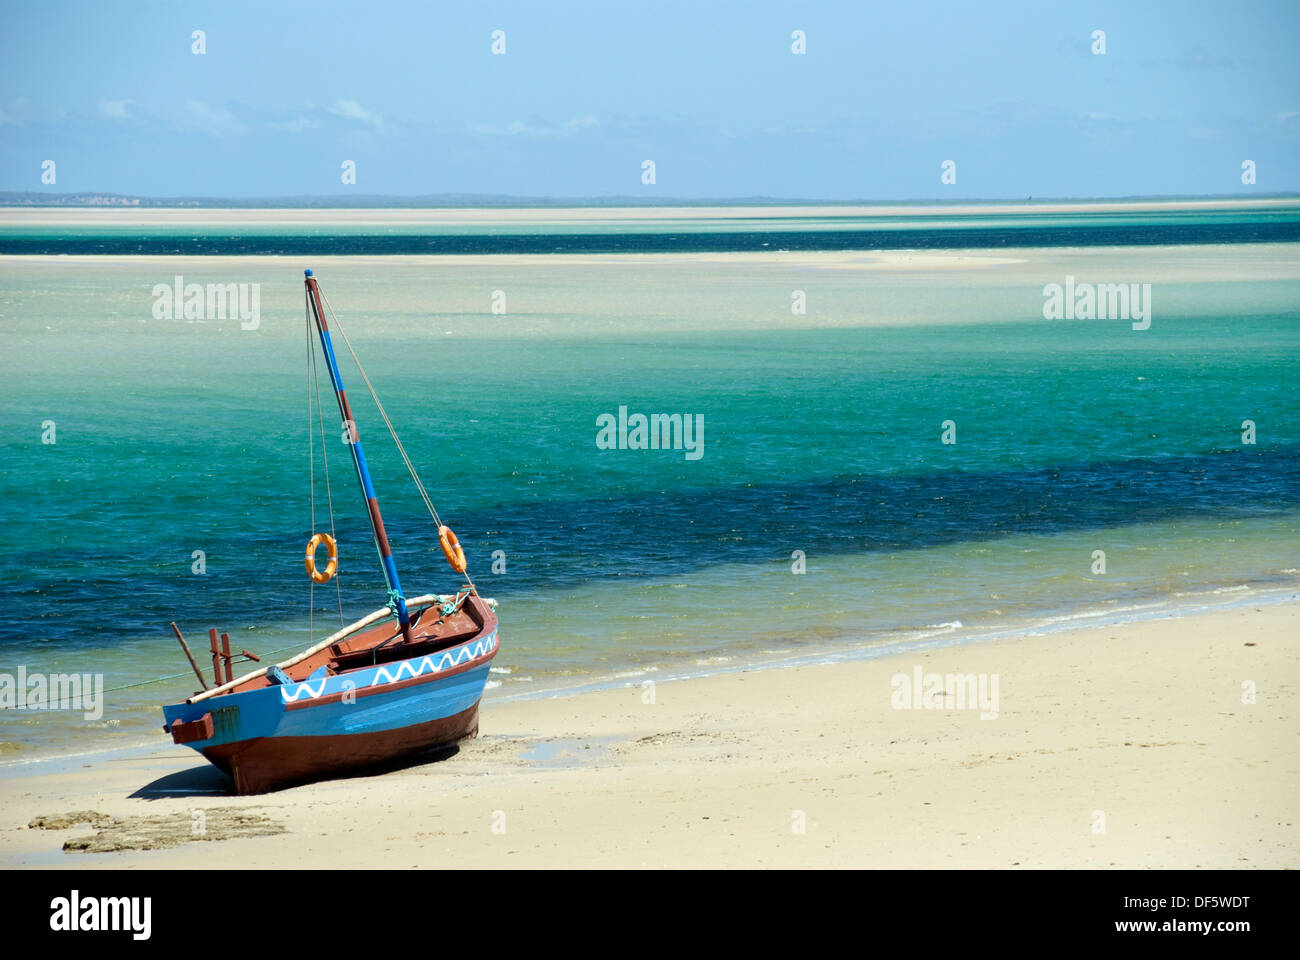 Dhow au bord de l'eau, au Mozambique. Paysage Photo Stock